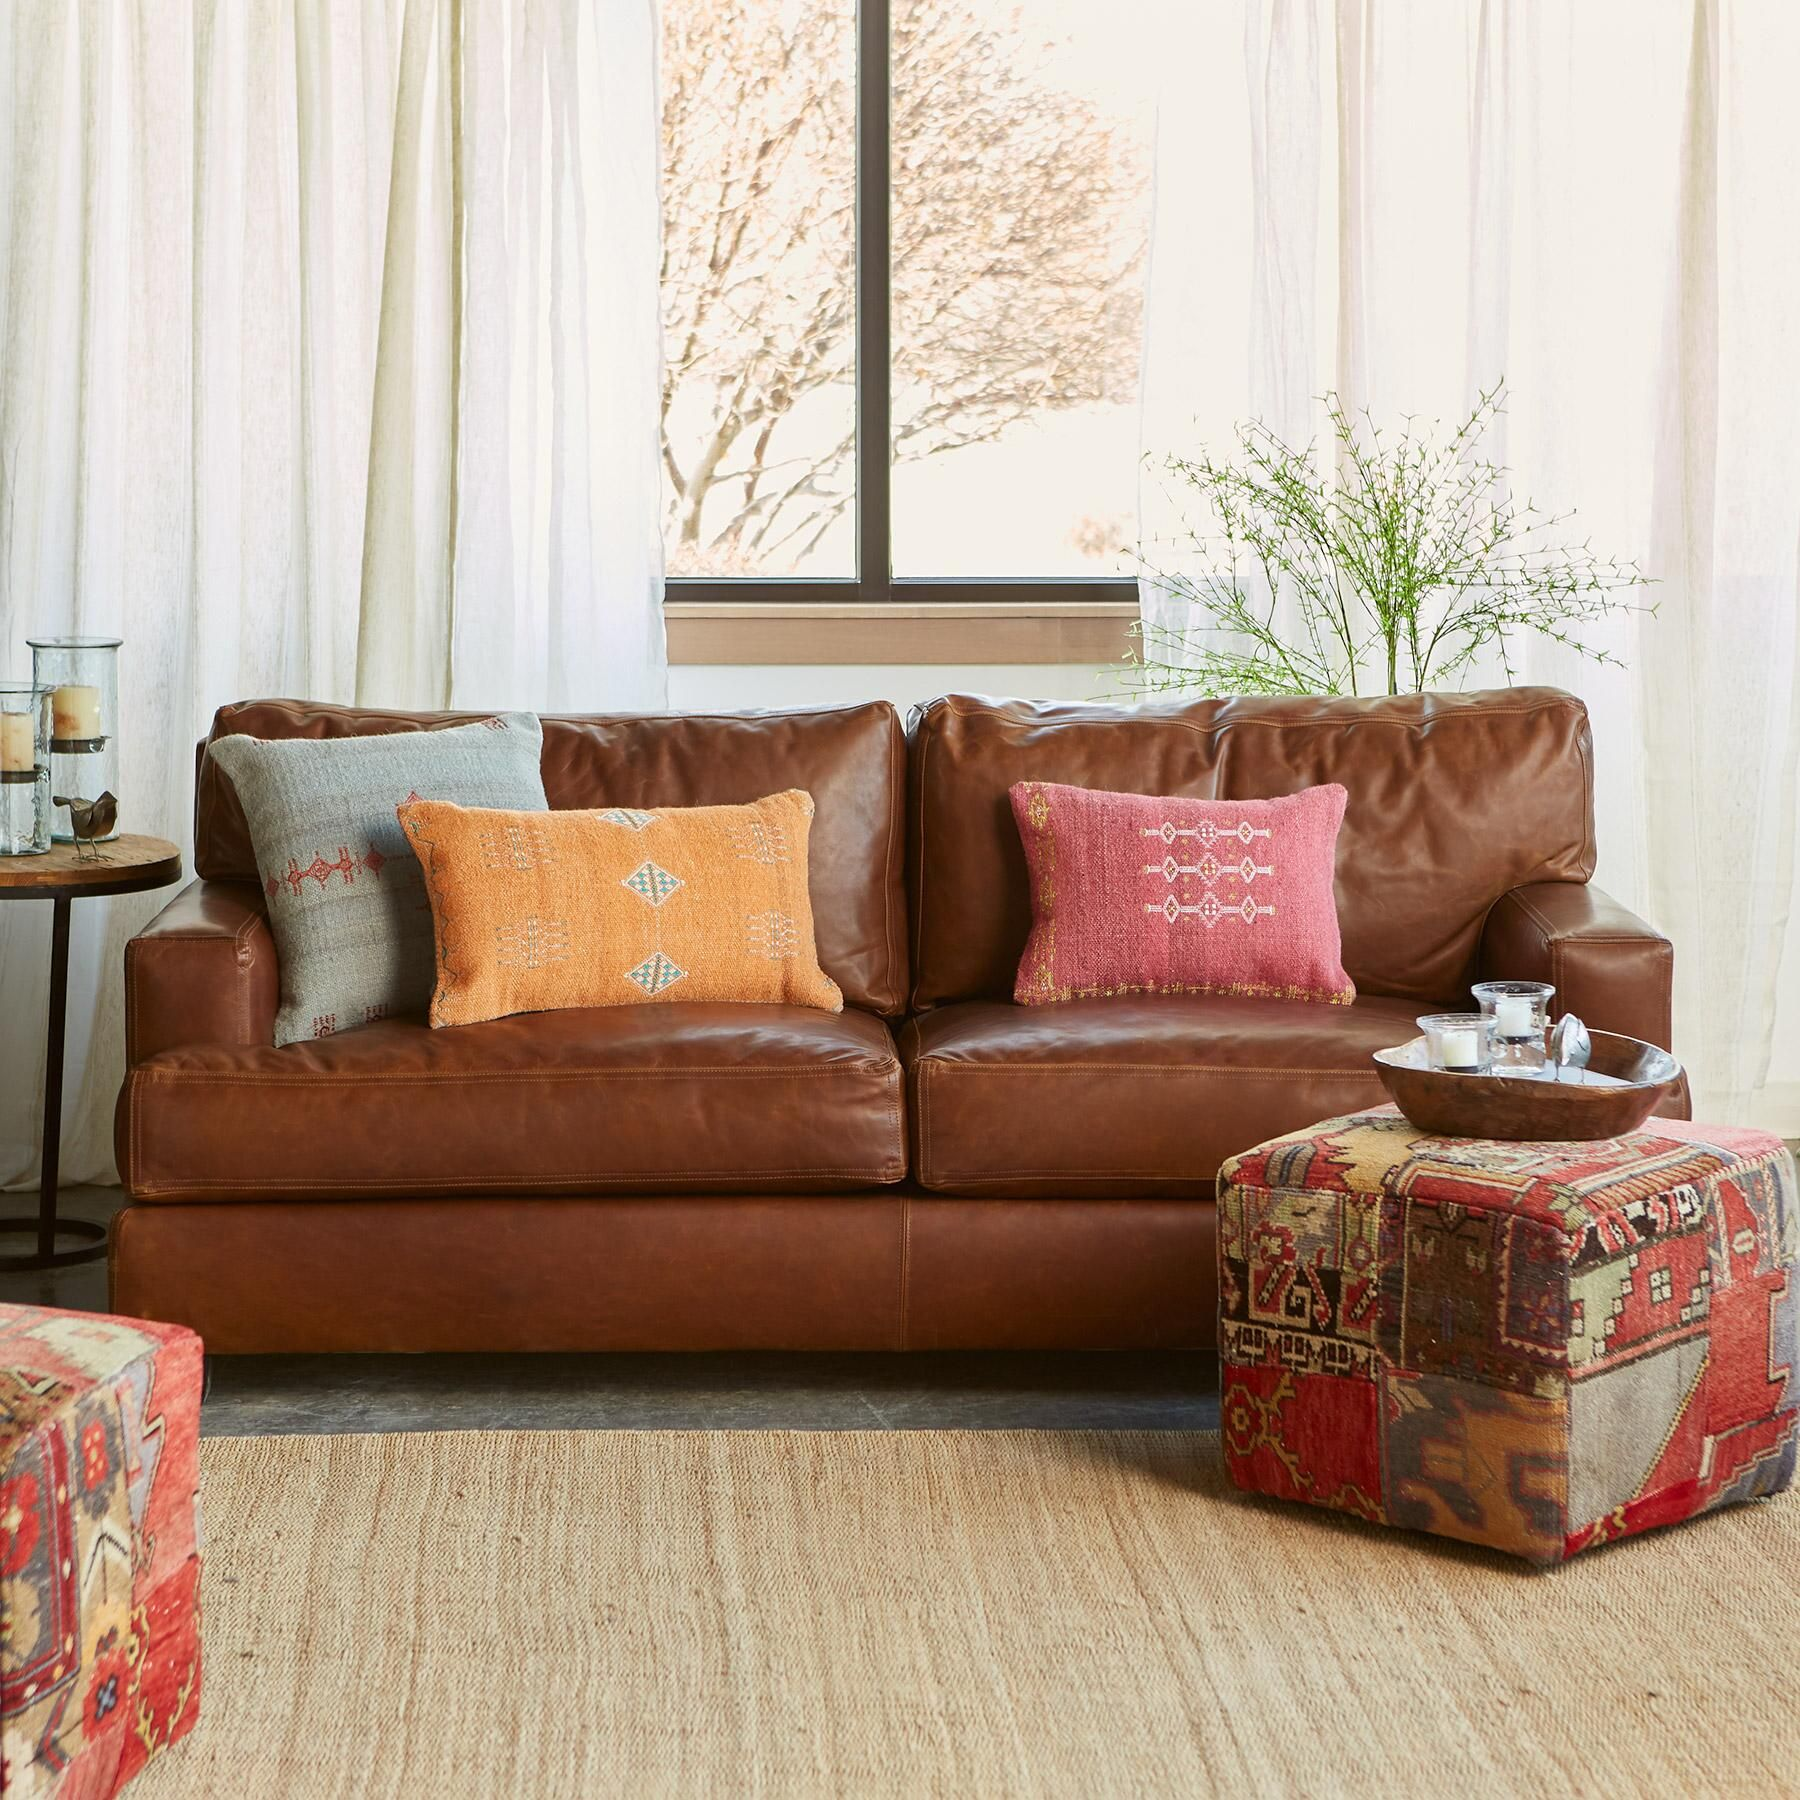 CORMAC LEATHER SOFA A fabulously solid and fortable sofa